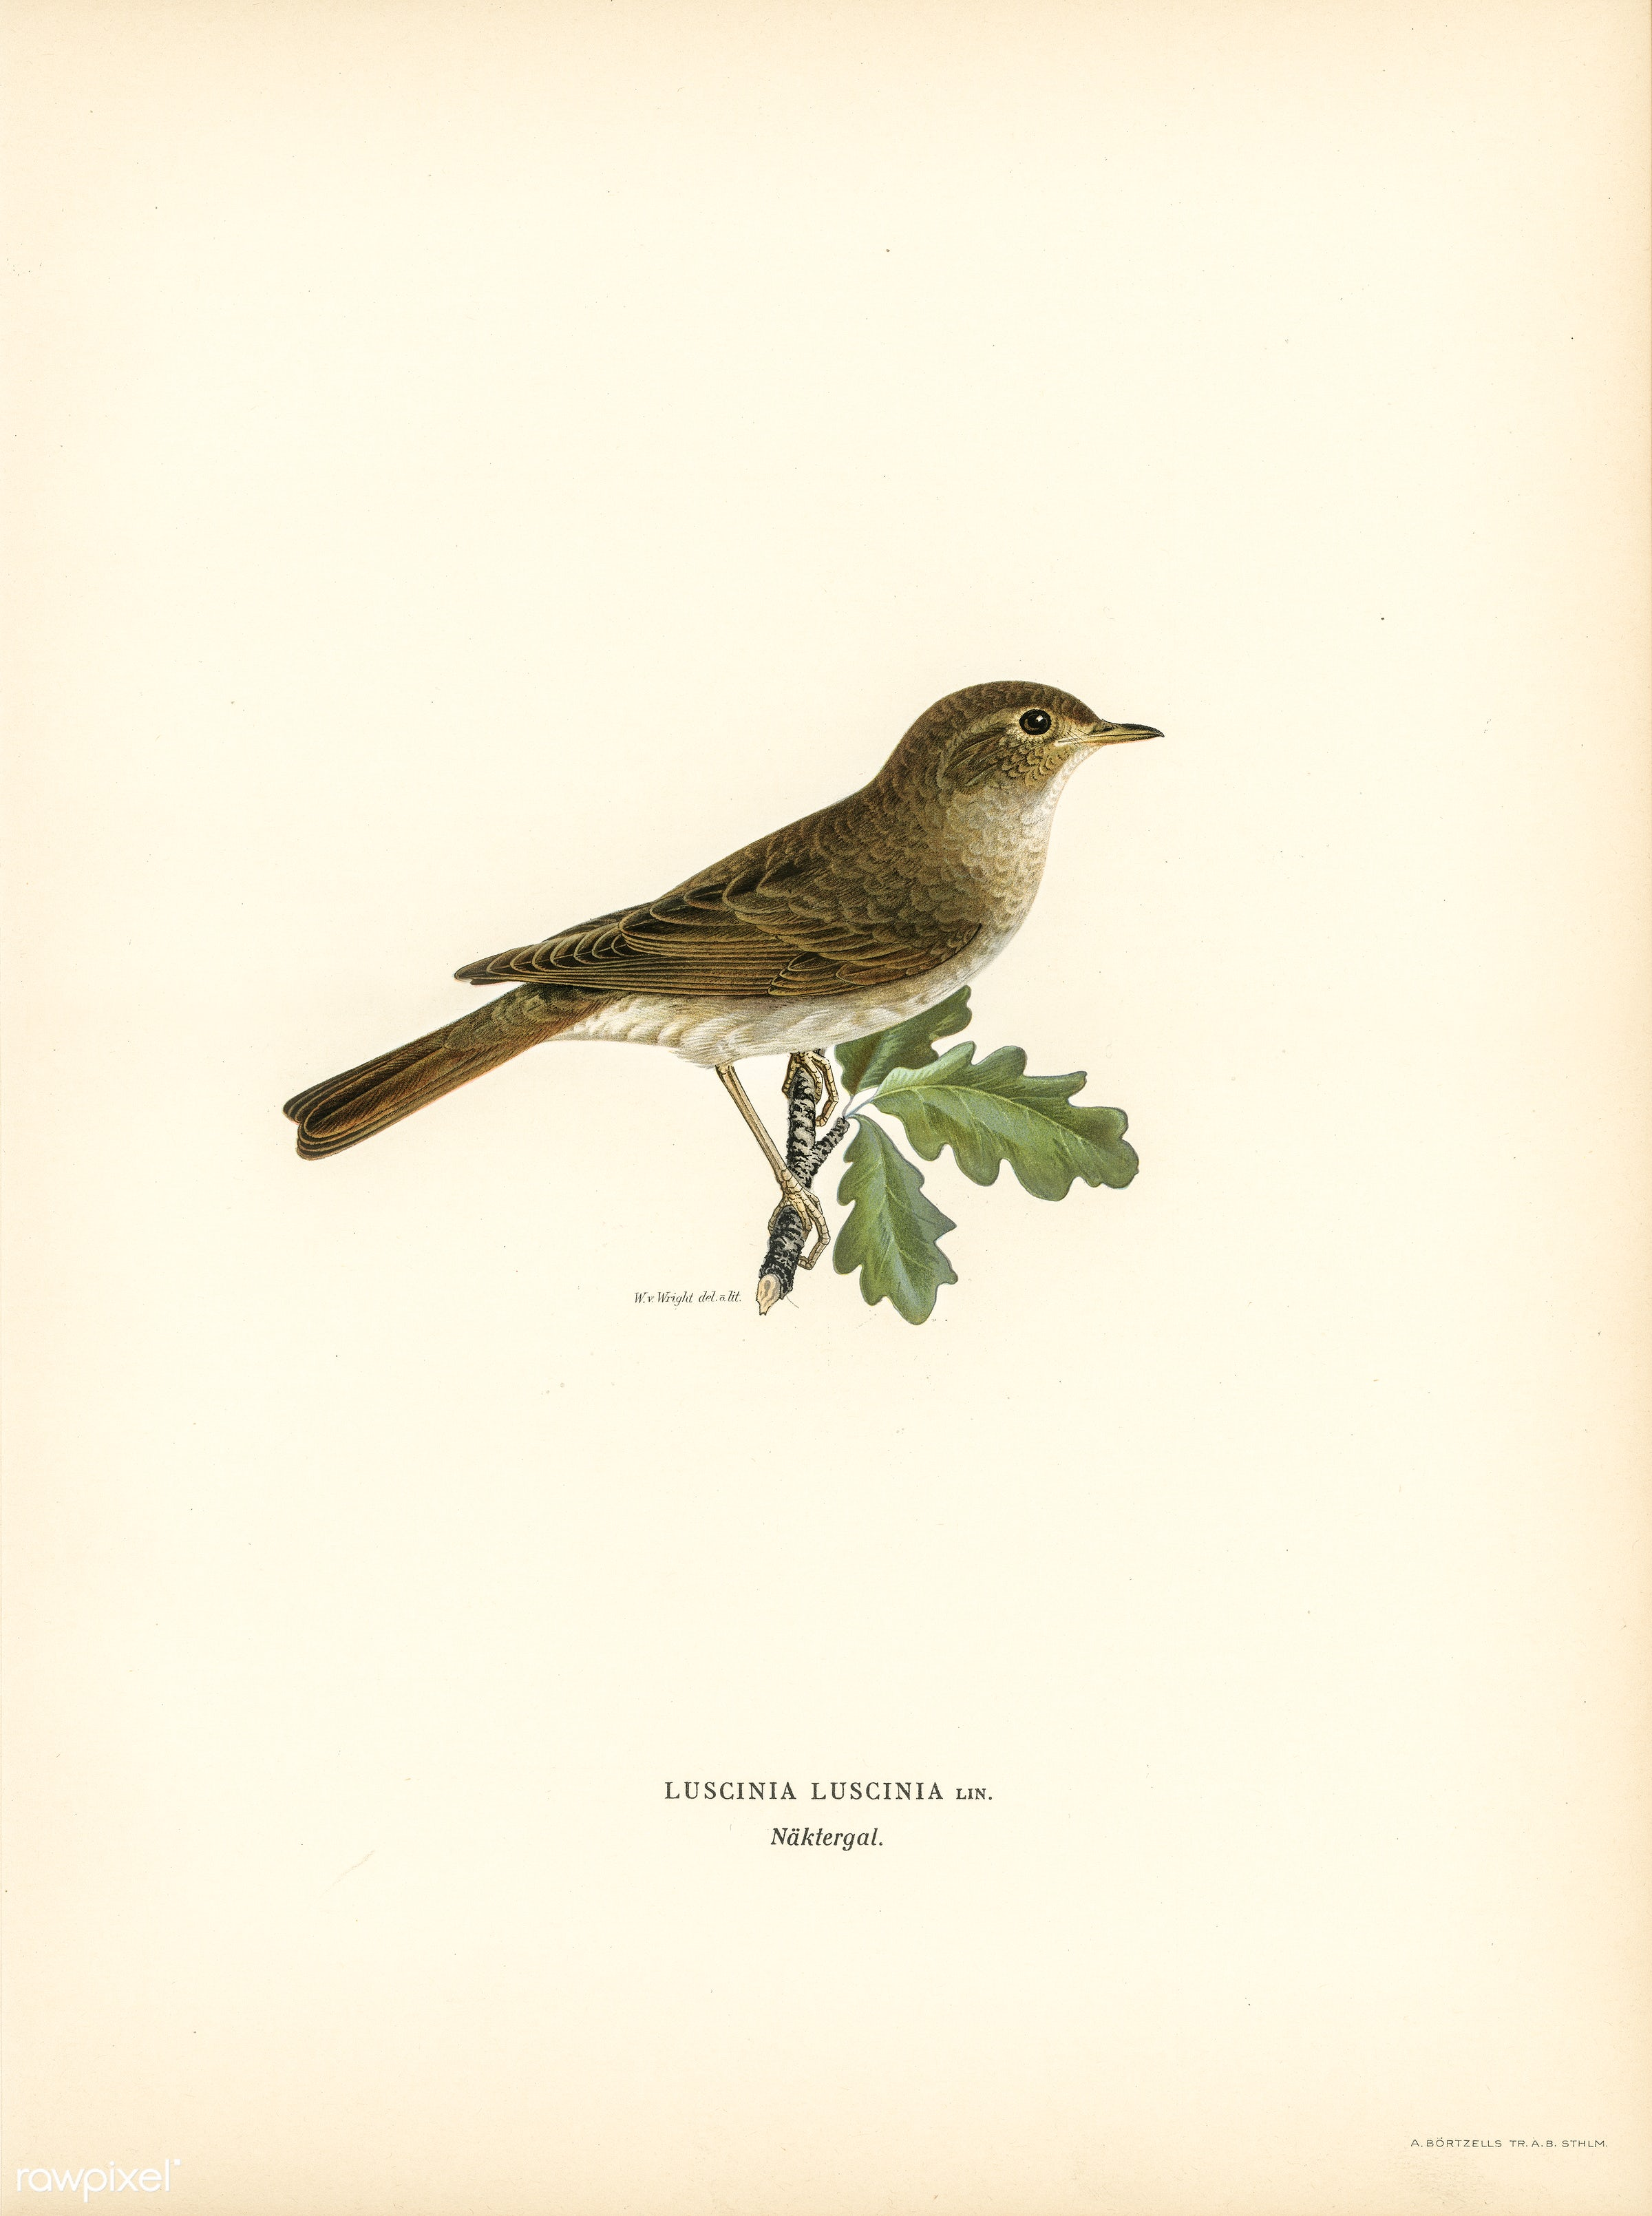 Thrush Nightingale (Luscinia luscinia) illustrated by the von Wright brothers. Digitally enhanced from our own 1929 folio...